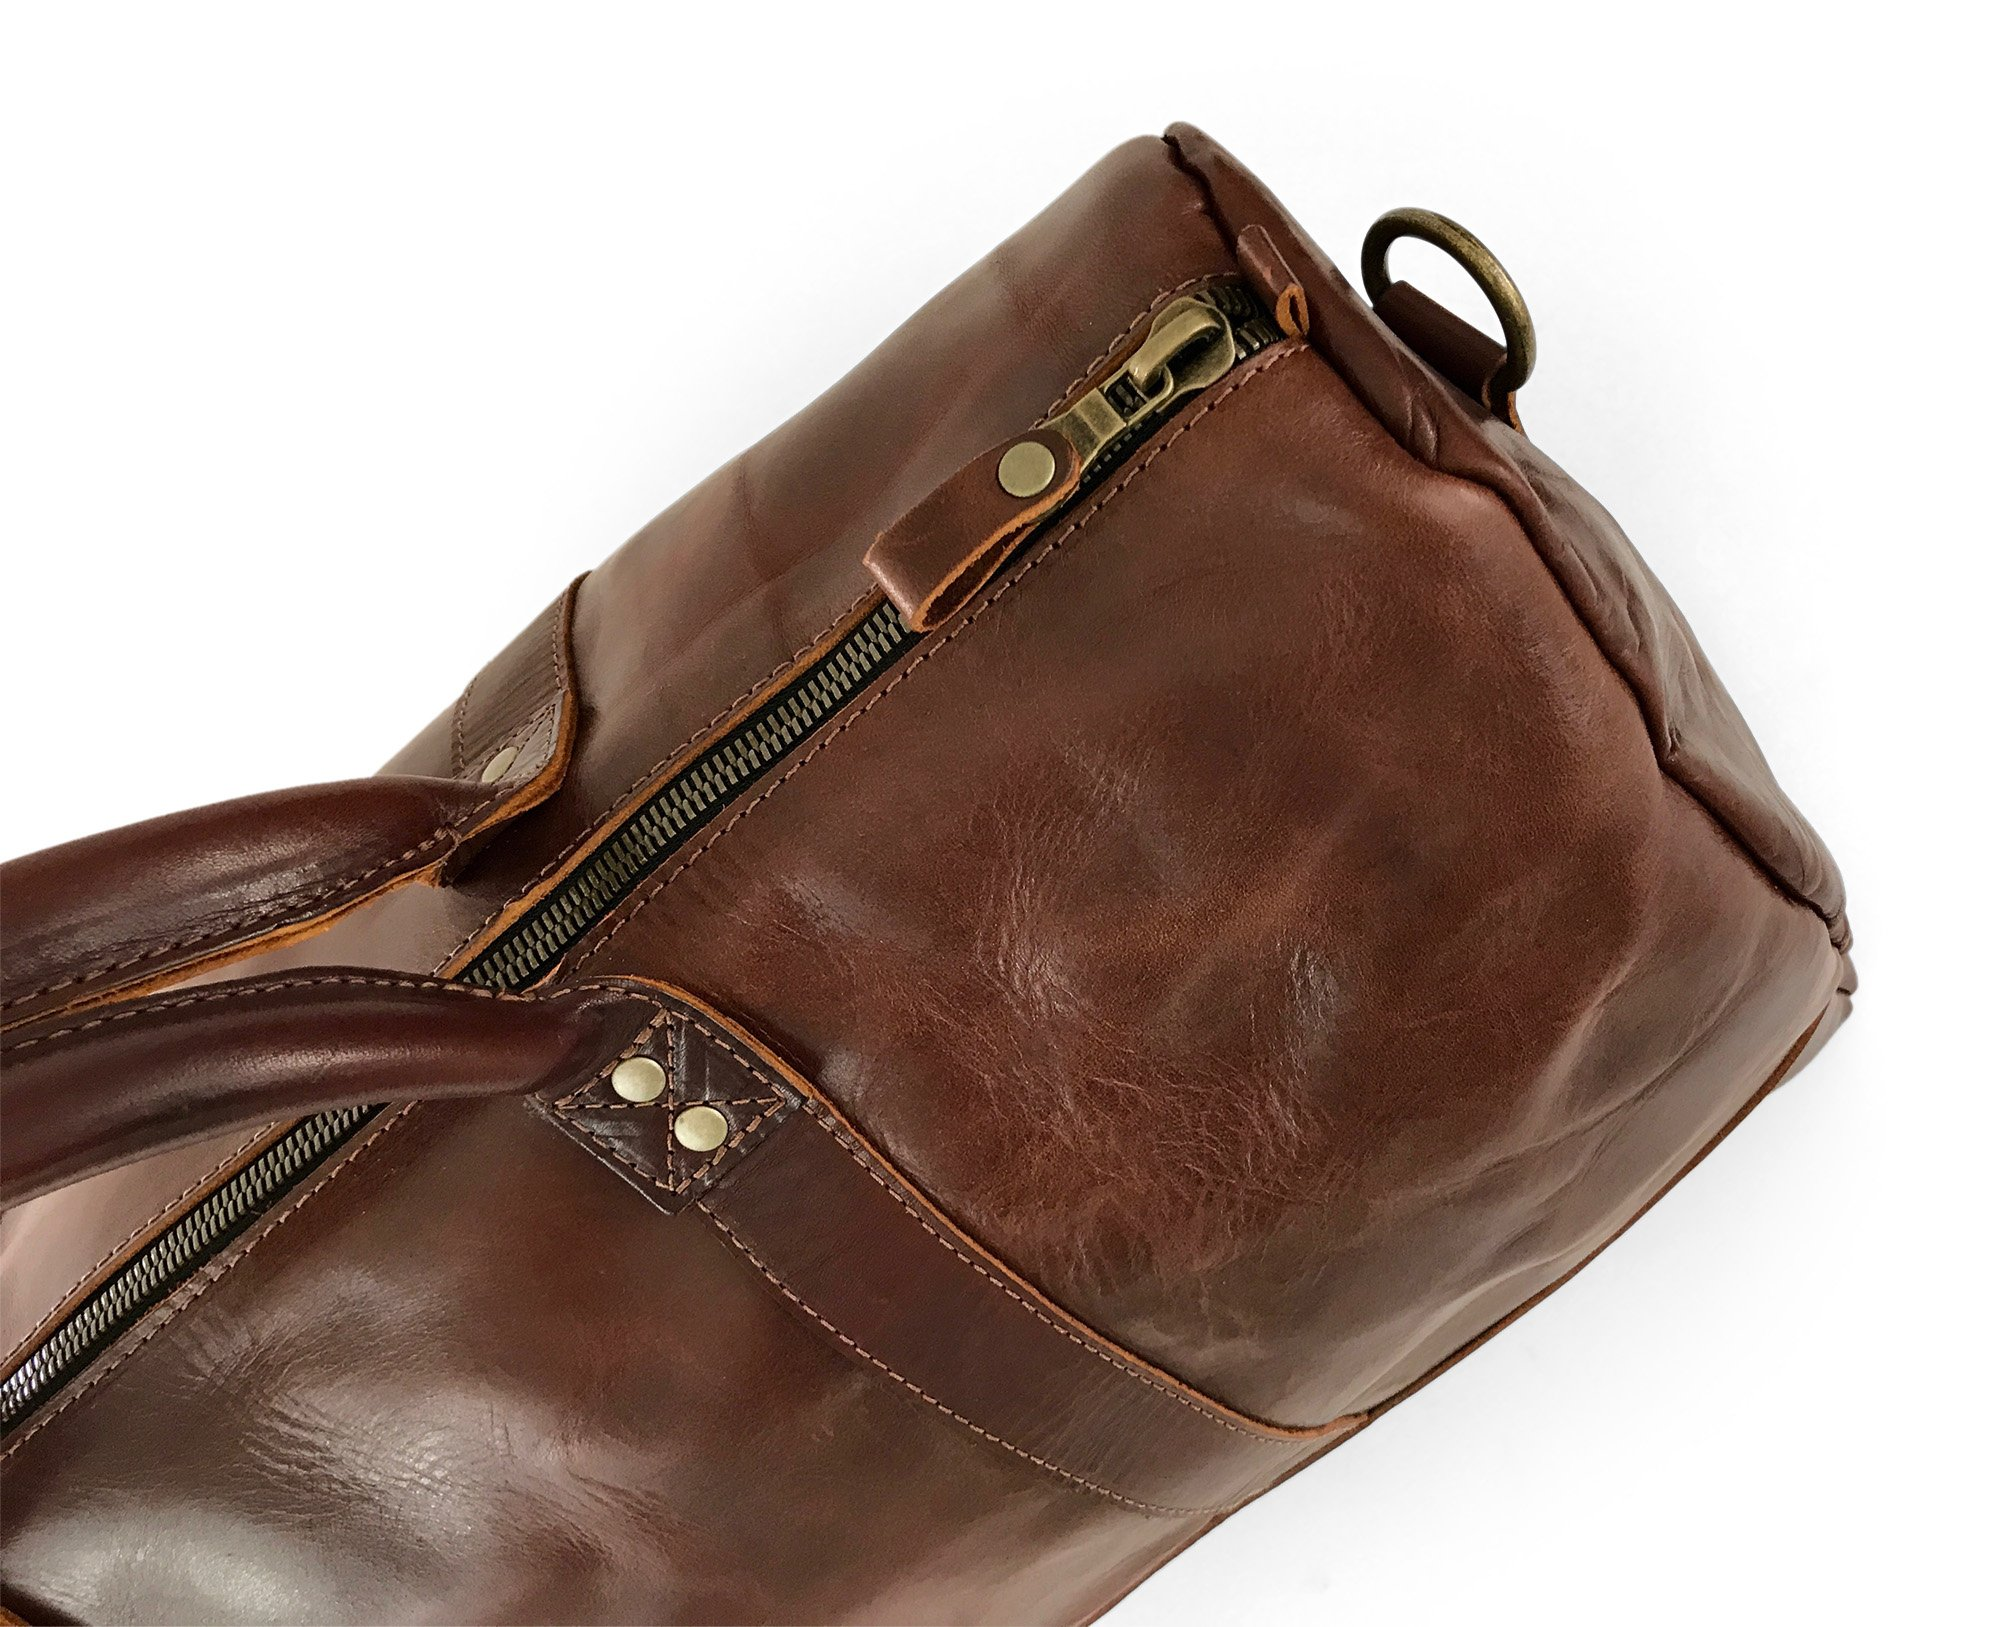 Vintage Full Grain Leather Duffle Bag & Weekend Carryall by Jackson Wayne (Vintage Brown) by Jackson Wayne (Image #6)